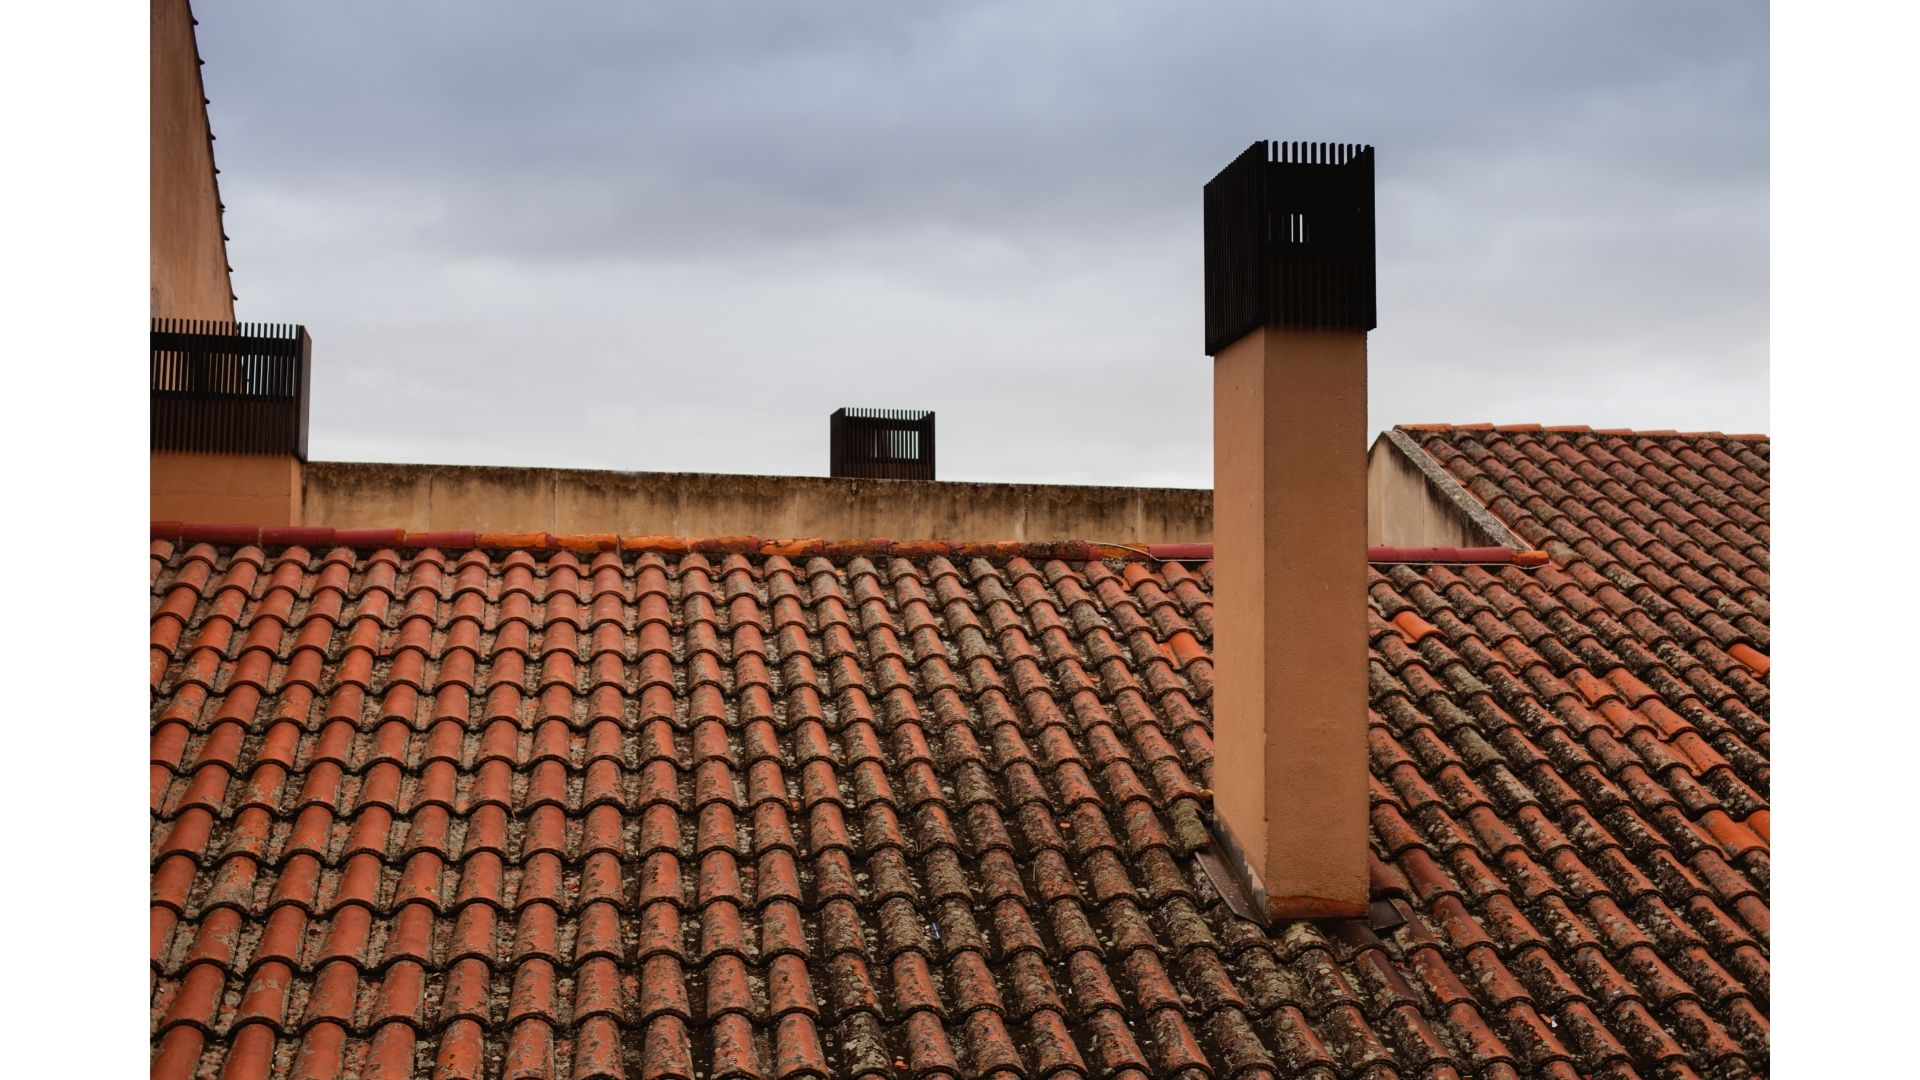 What You Should Consider When Learning About the Importance of Improving Your Home with a Roofing Project